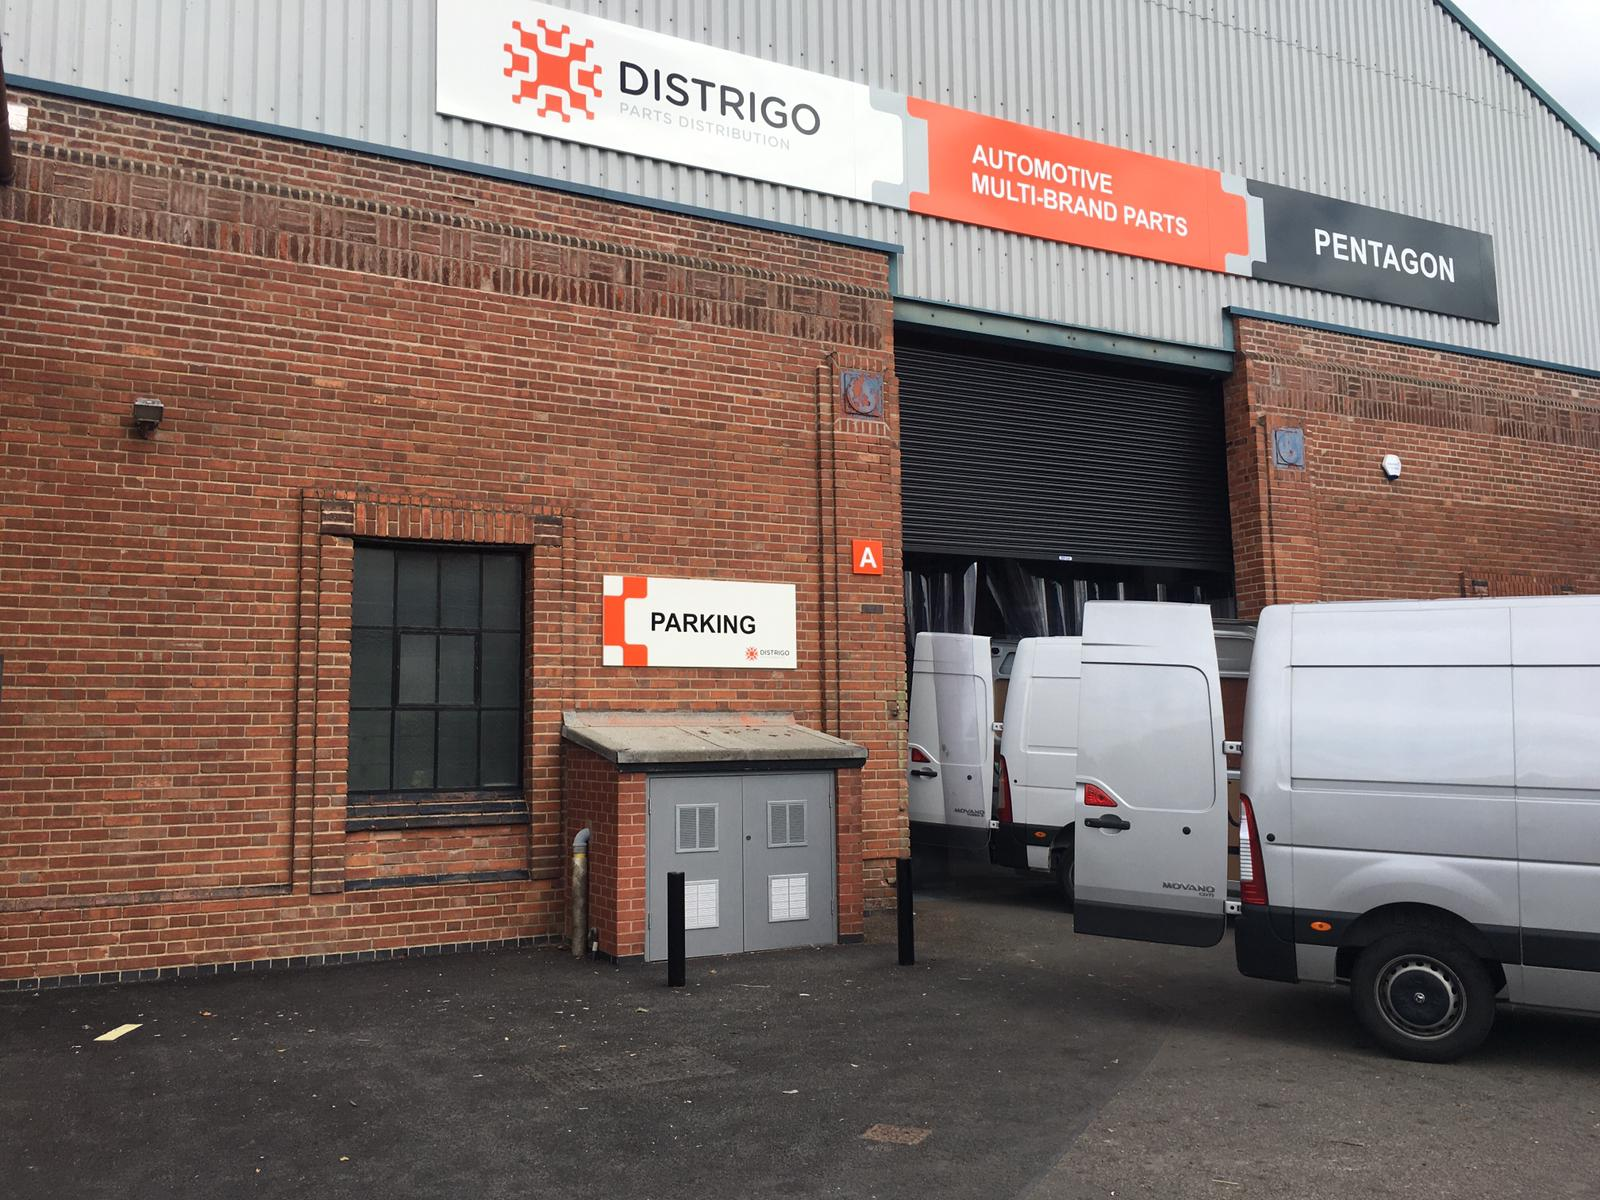 Parts Distribution Derby